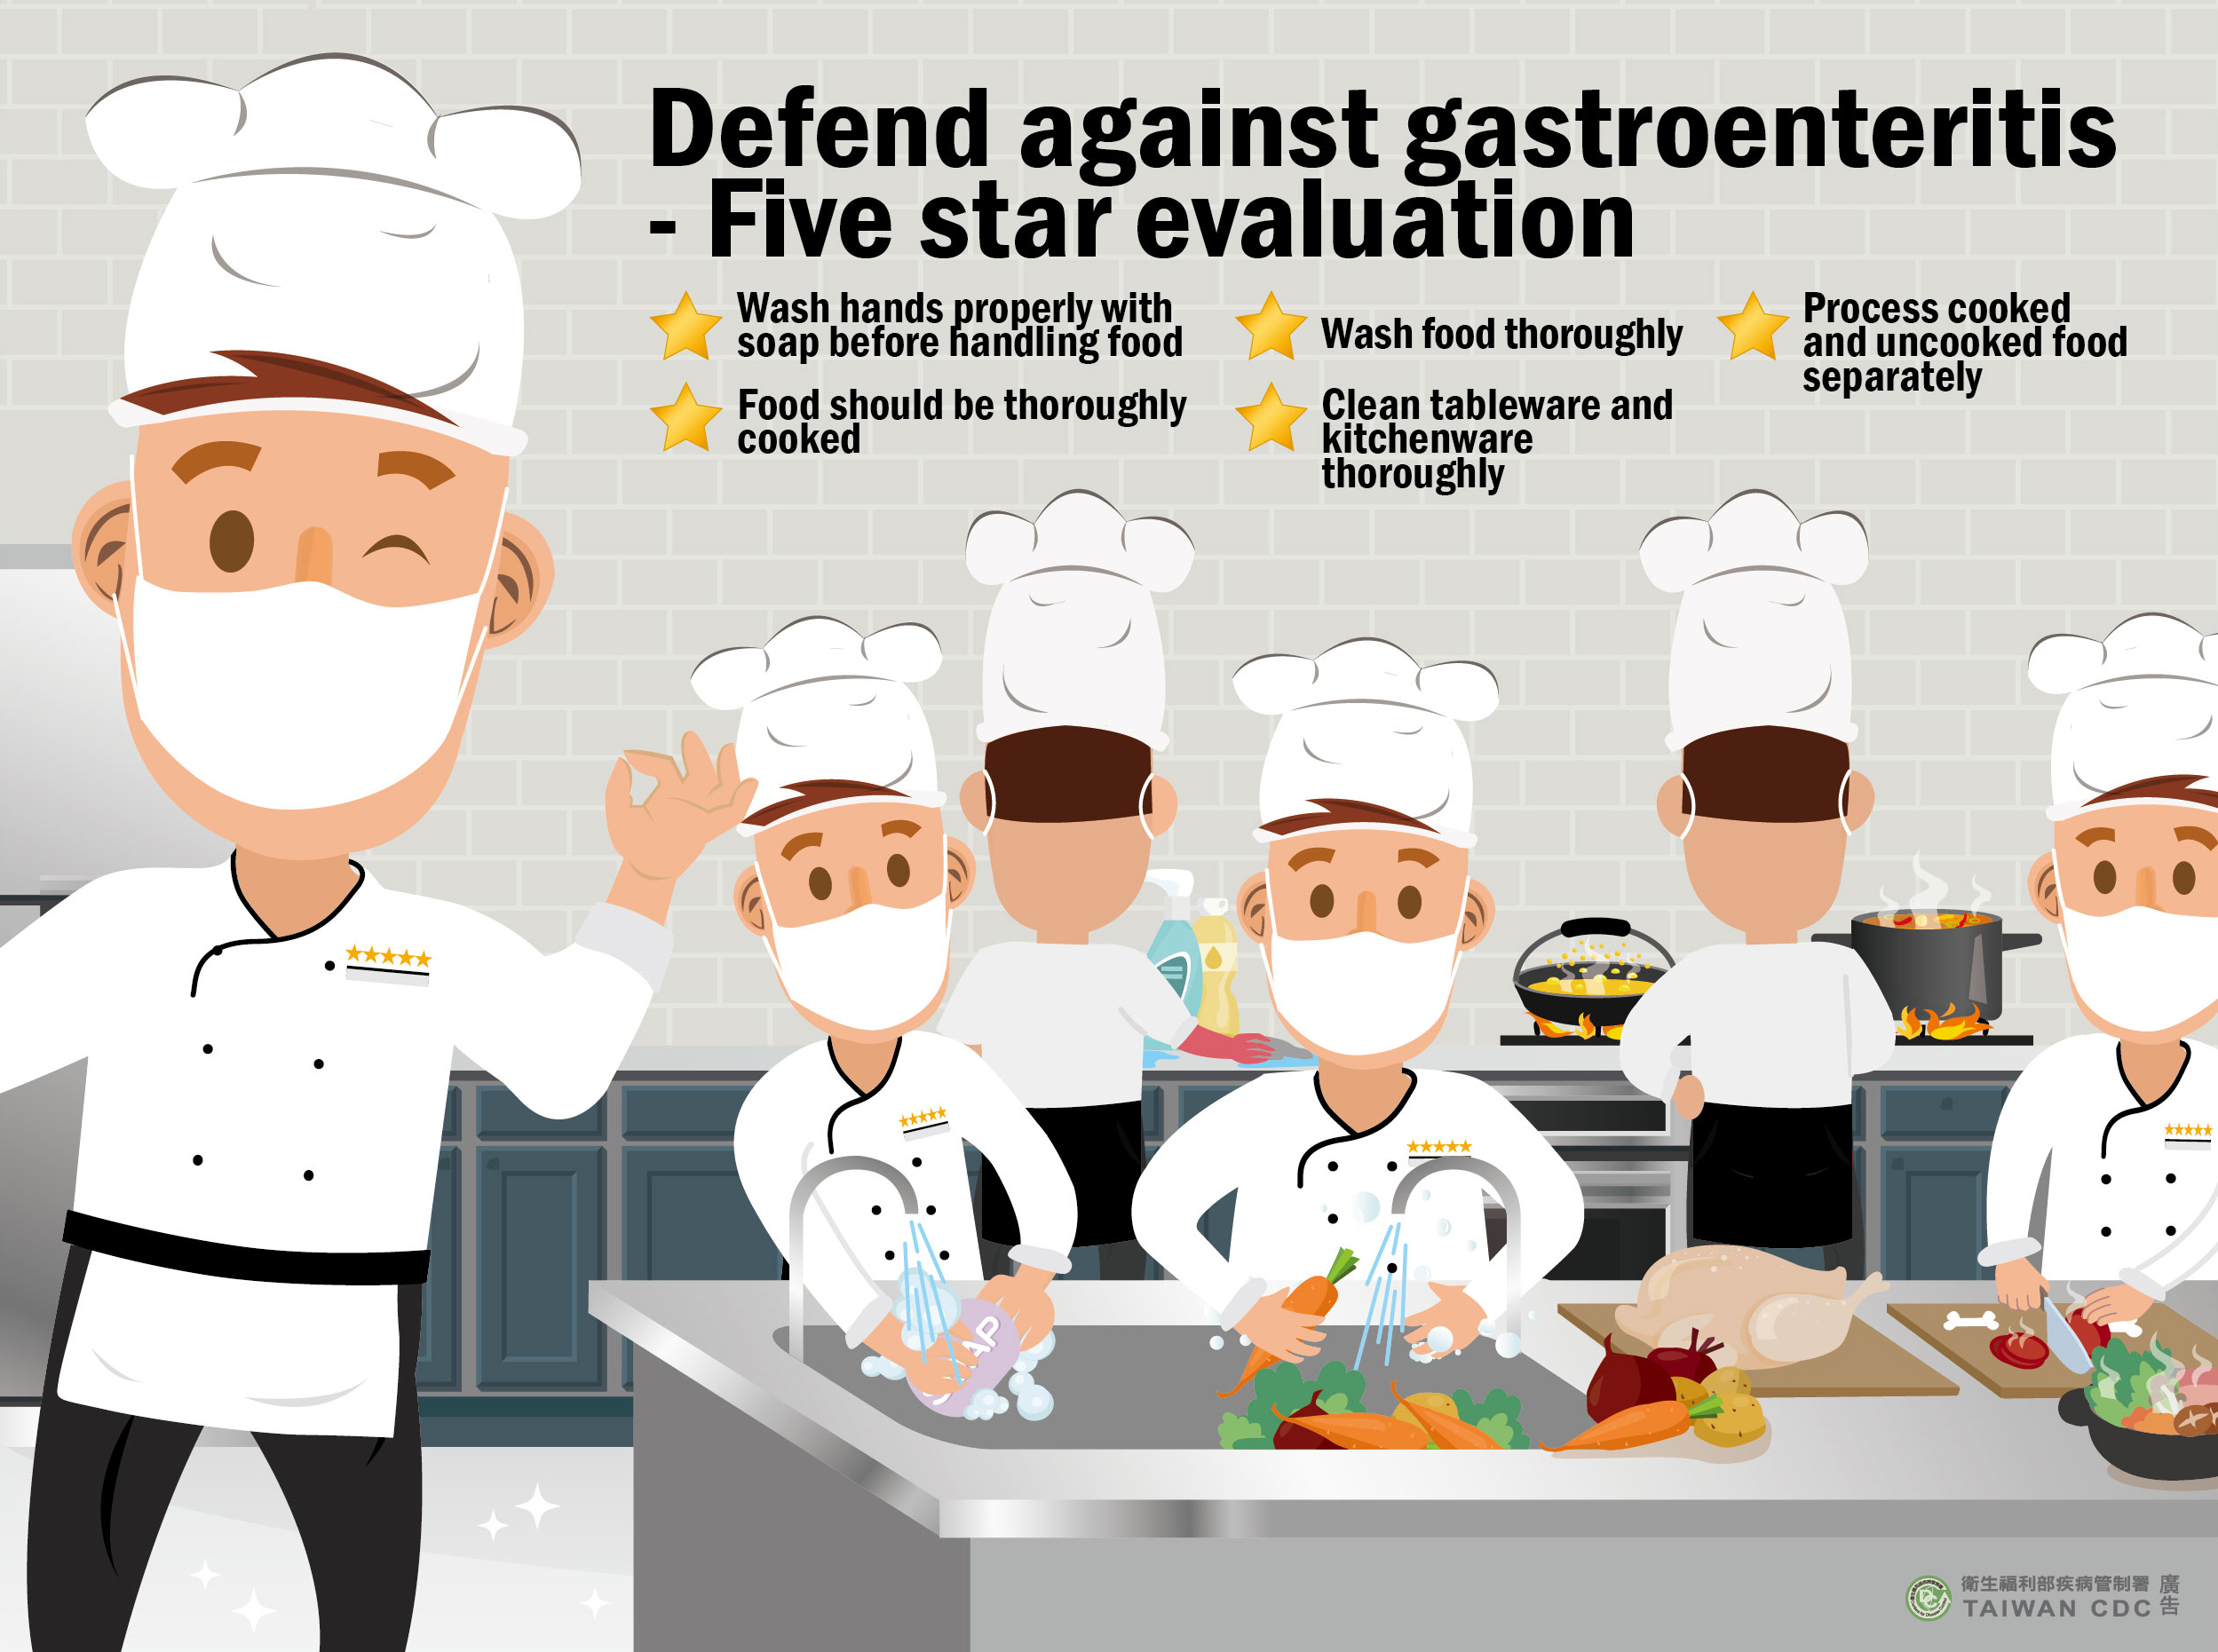 詳如附件【click me】Defend against gastroenteritis- Five star evaluation腸胃保衛戰 五星大評鑑(英文)